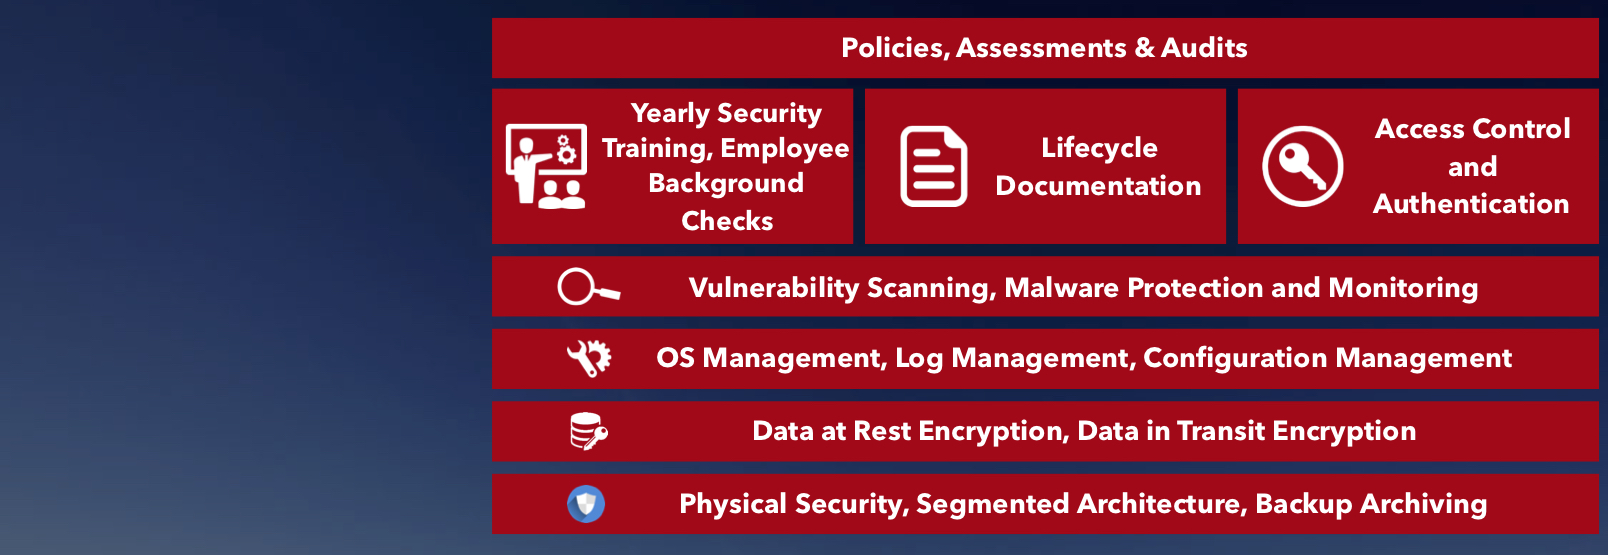 Approach to compliance & security - Full Stack Management, Built to NIST 800-53